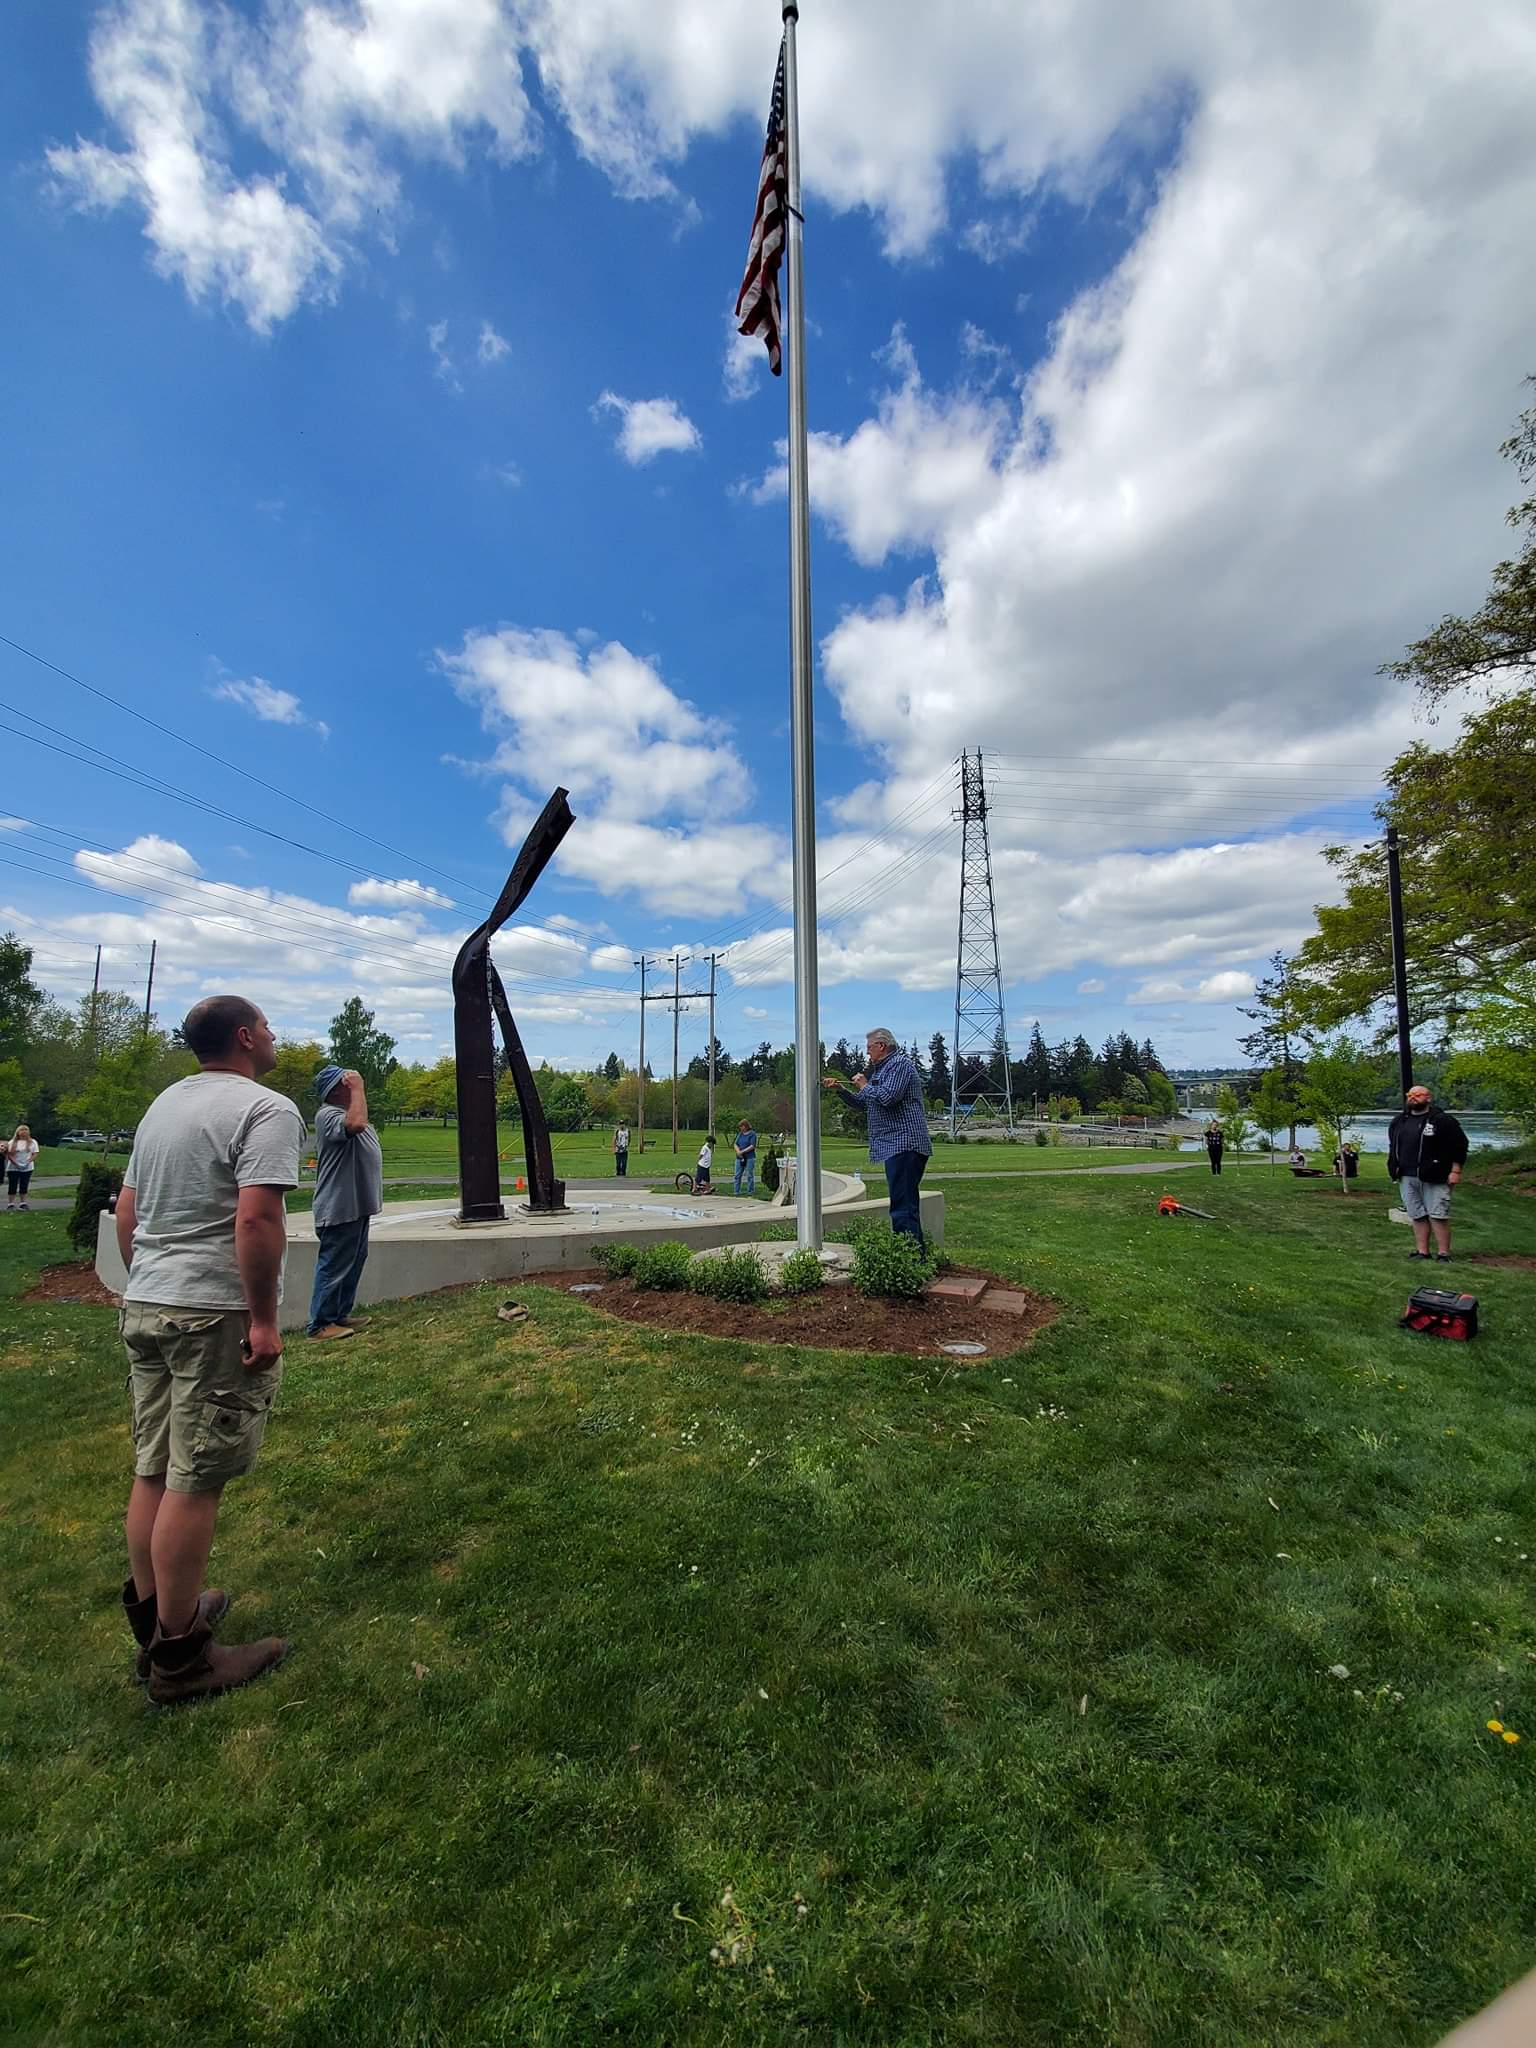 Work stopped for the retiring of the colors. Here all the volunteers stand and show respect as the new flag is flown.